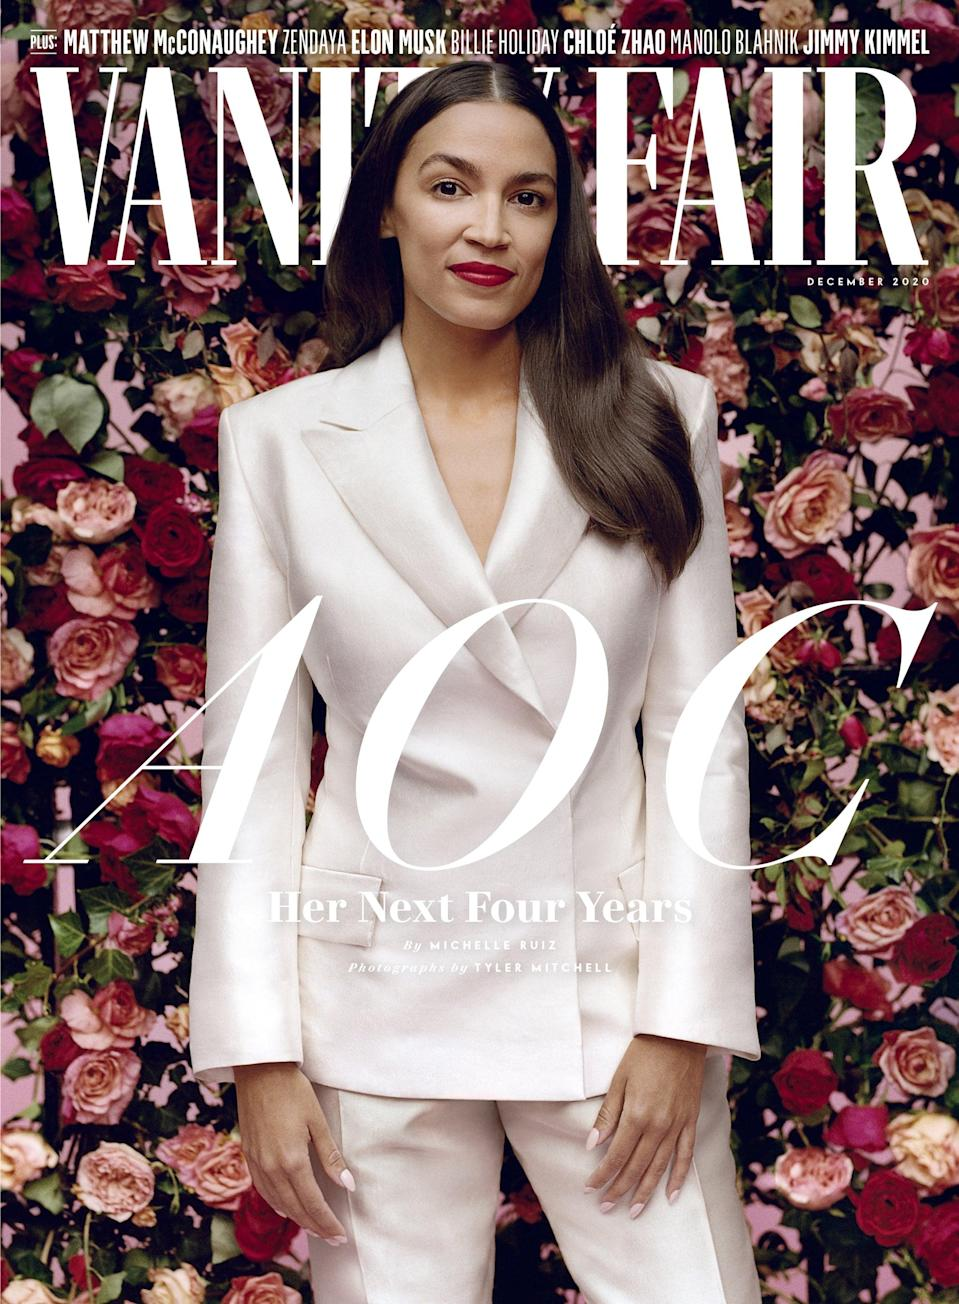 We Must Discuss Alexandria Ocasio-Cortez's Outfits on the Cover of Vanity Fair